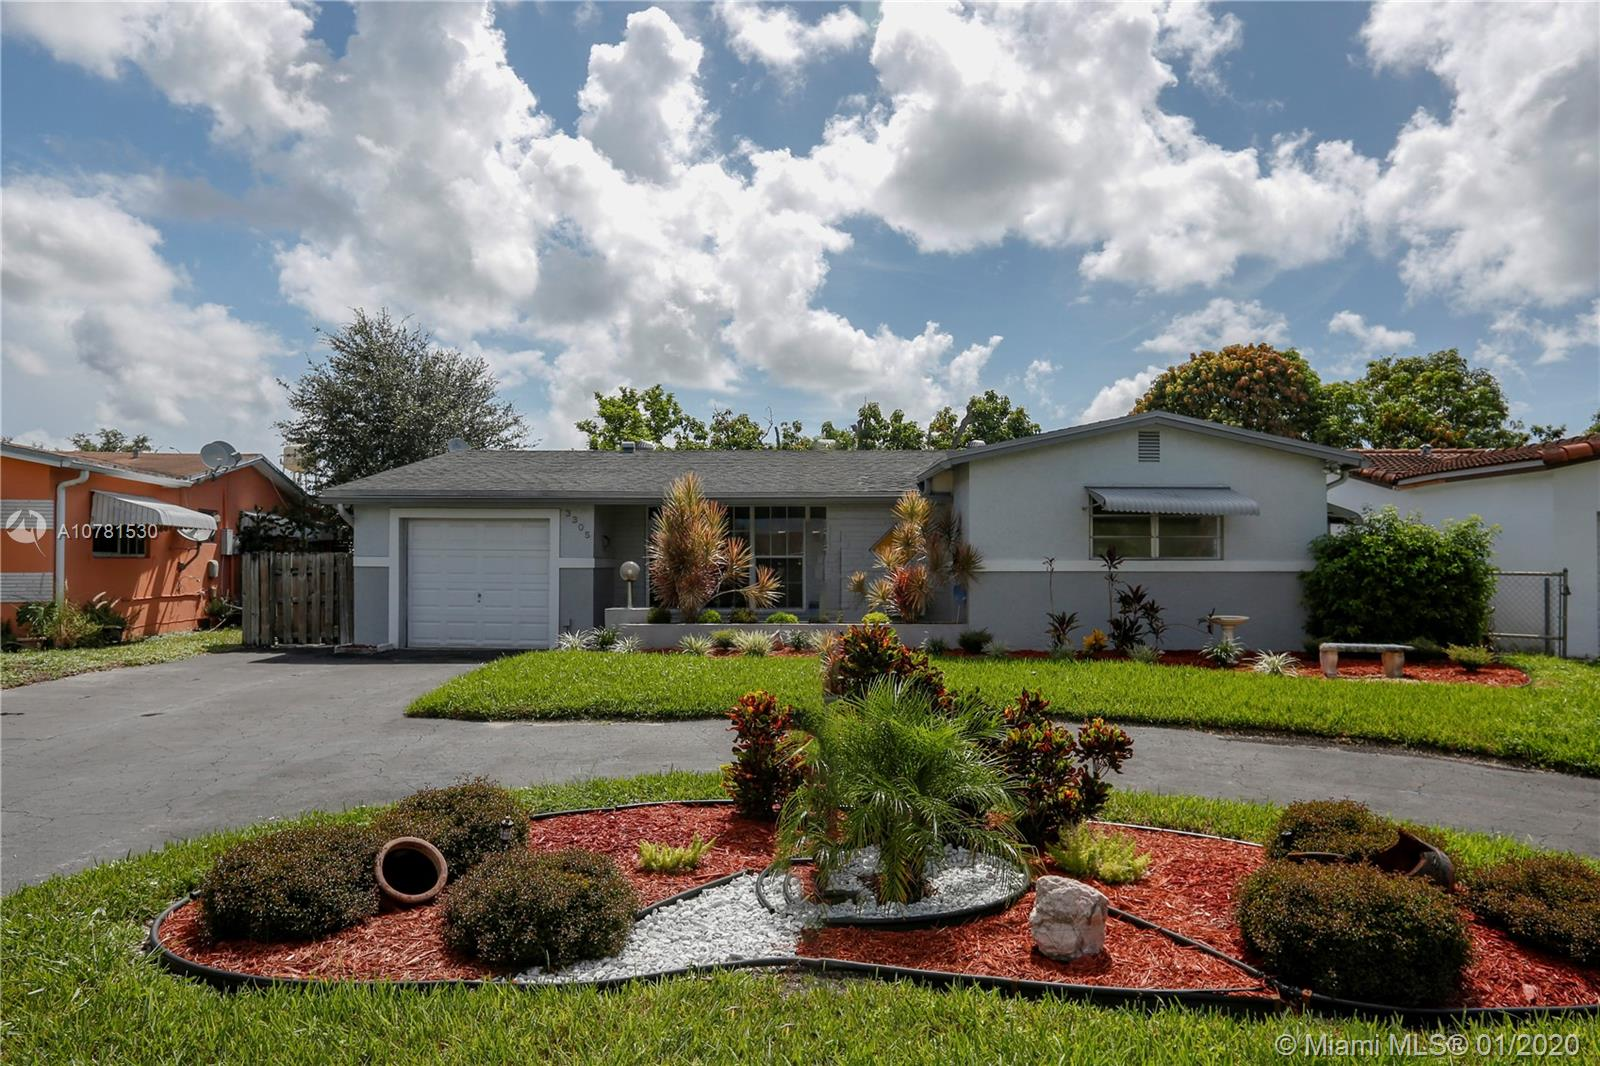 3305  Acapulco Dr  For Sale A10781530, FL